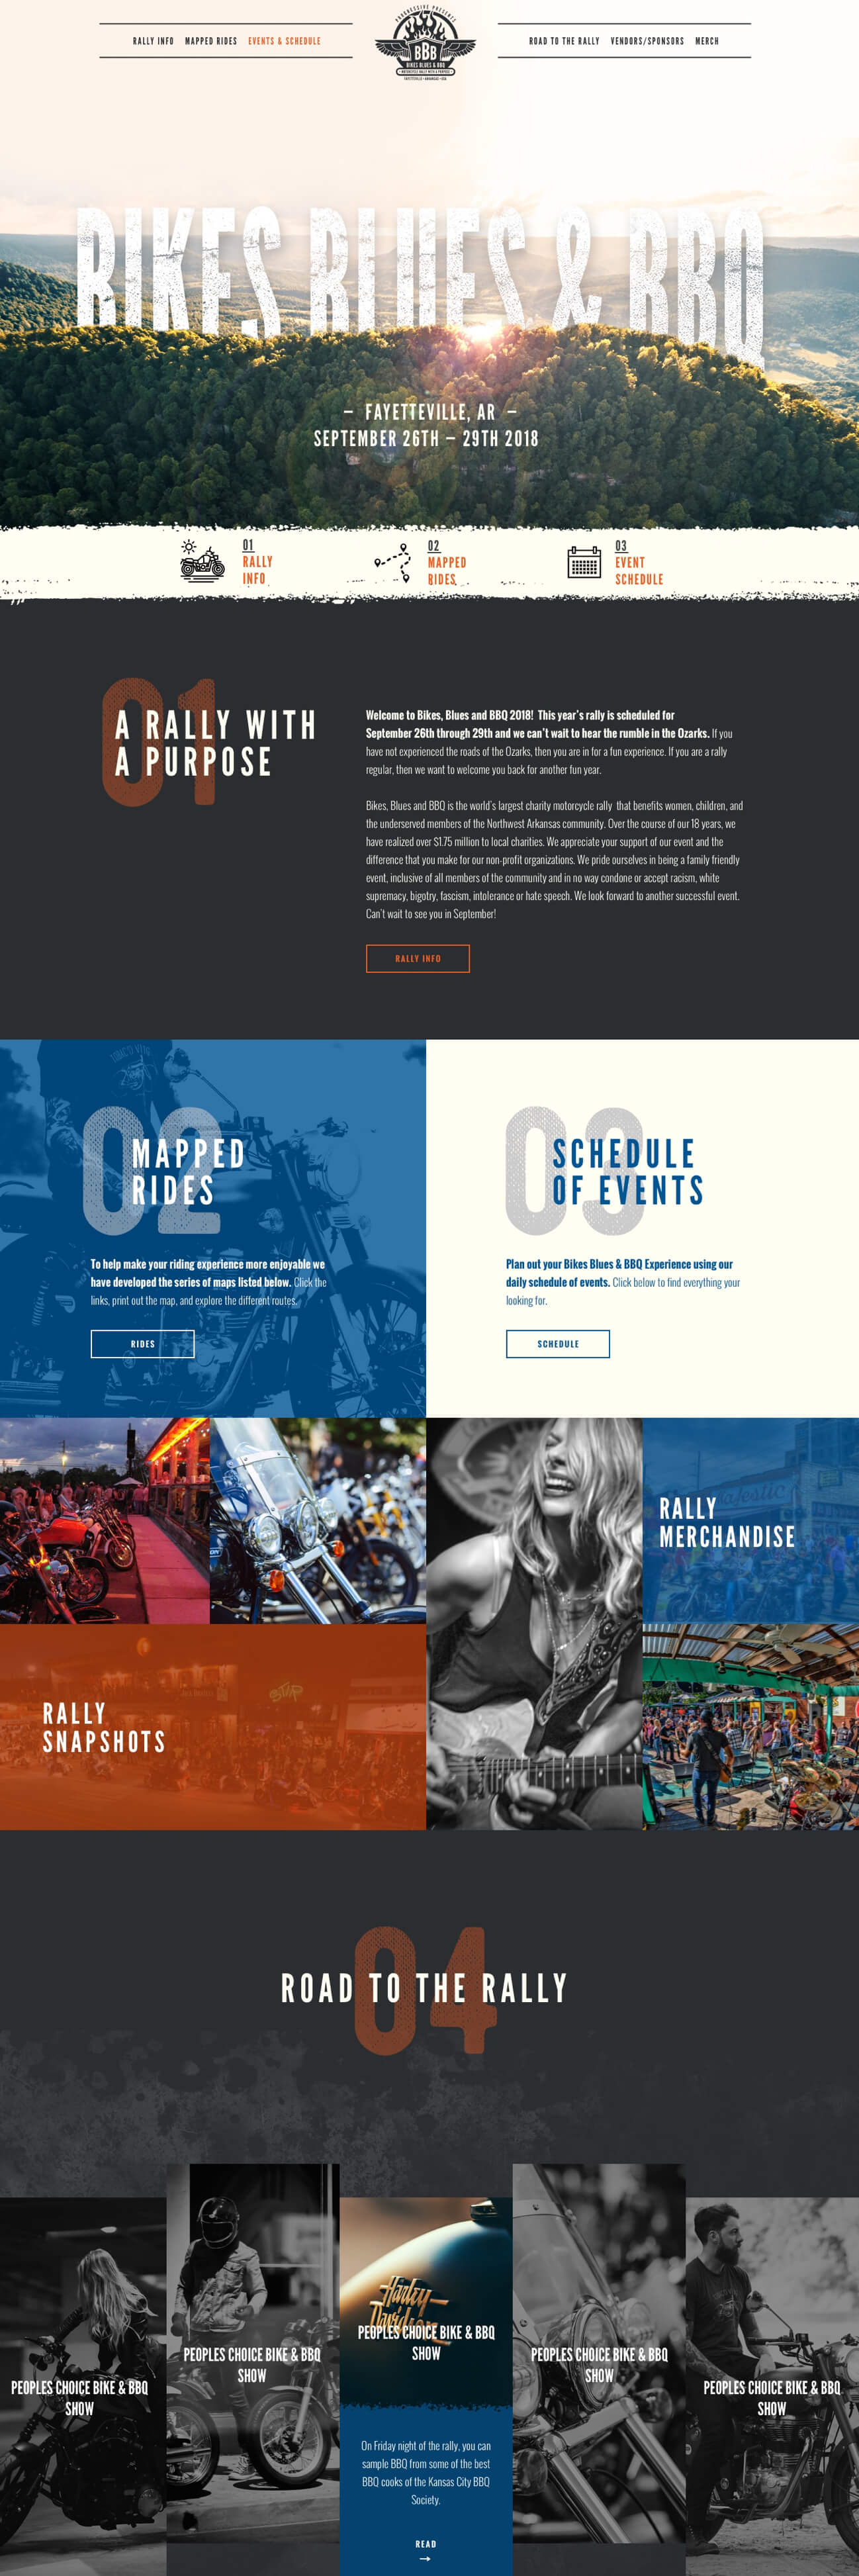 bikes blues and bbq homepage website design